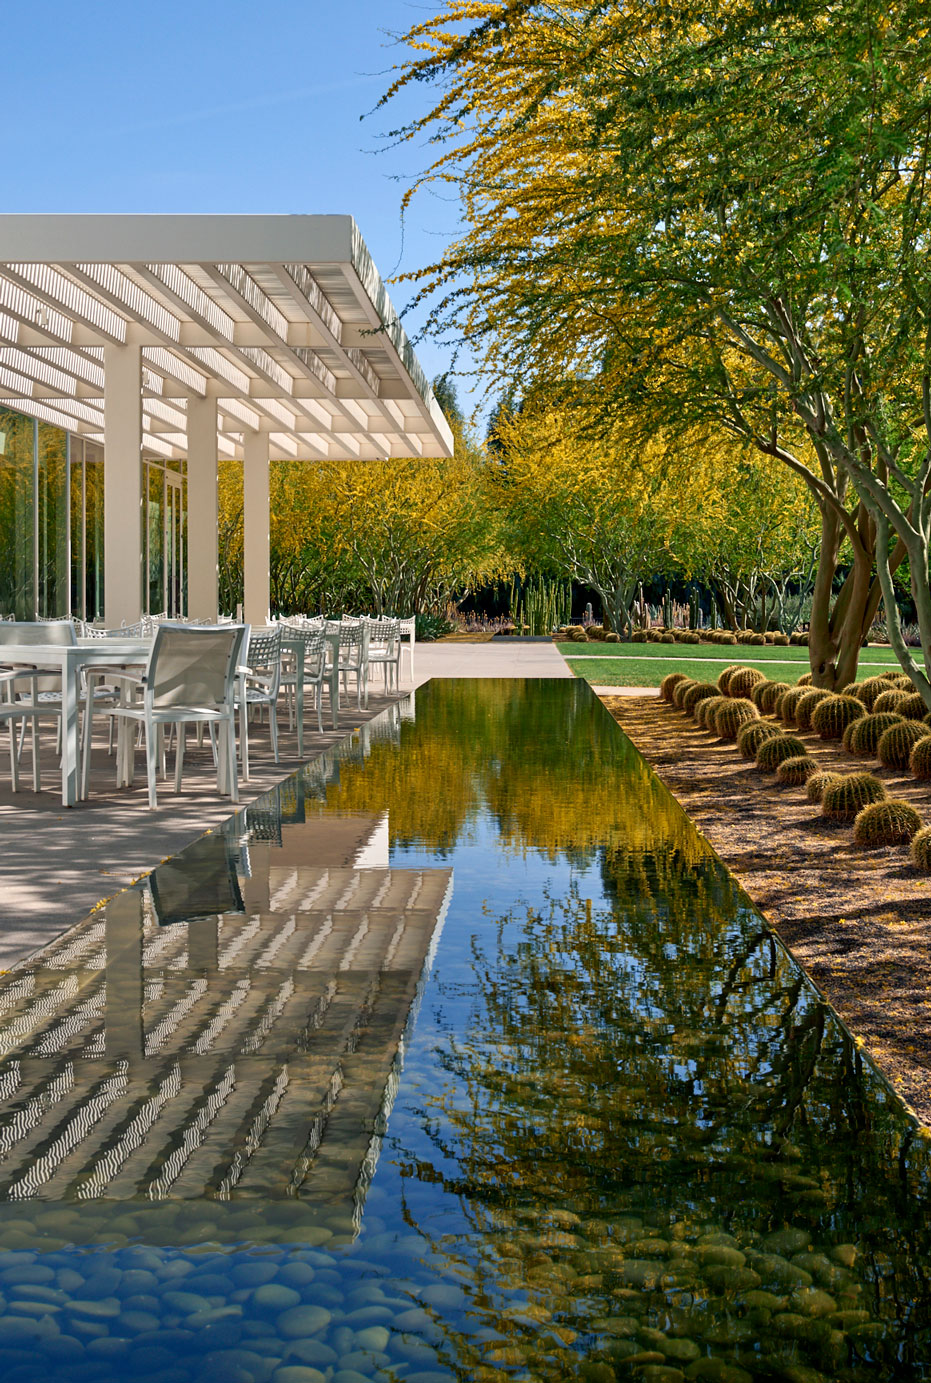 A view toward the Sunnylands Cafe patio with the low-evaporative water fountain in the foreground and blooming Palo Brea trees on the right.